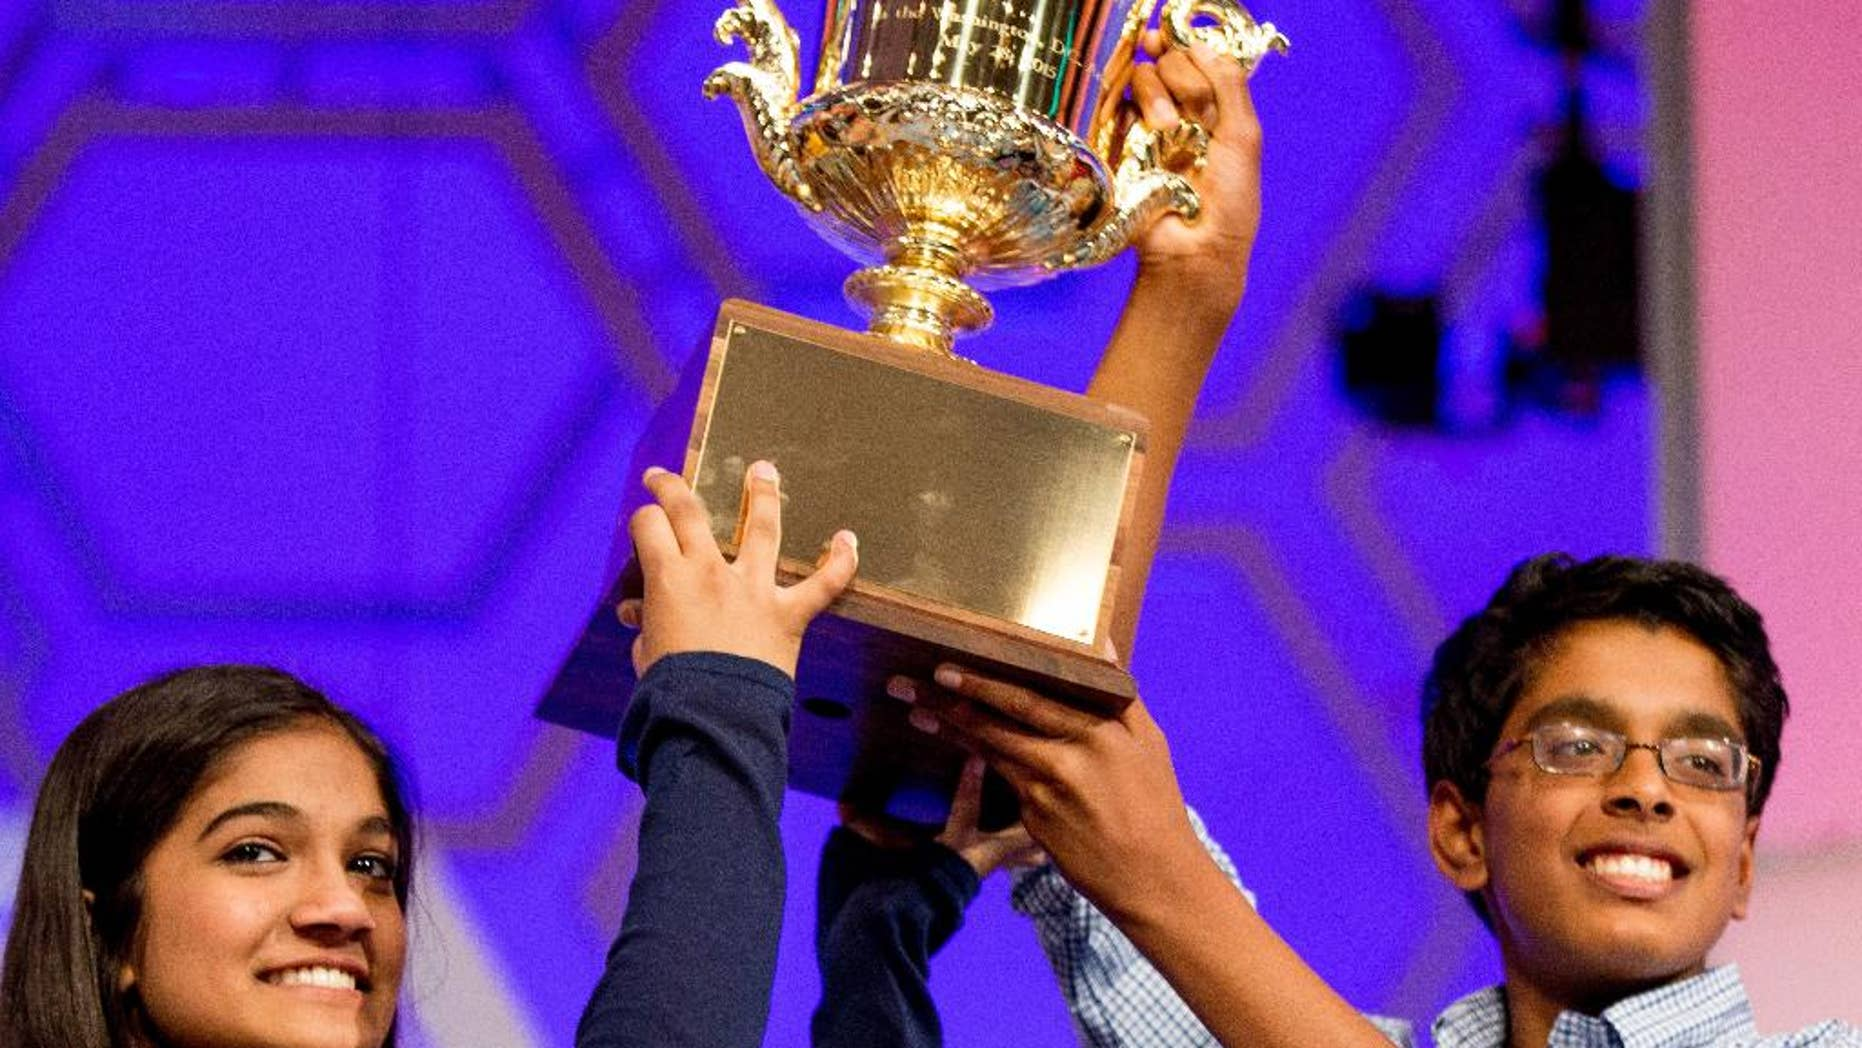 FILE - In this May 28, 2015, file photo, Vanya Shivashankar, 13, left, of Olathe, Kan., left, and Gokul Venkatachalam, 14, of St. Louis, hold up the trophy as co-champions after winning the finals of the Scripps National Spelling Bee in Oxon Hill, Md. The Scripps National Spelling Bee is adding a new wrinkle in 2017 in yet another attempt to stop a streak of ties for the championship. This year, the top spellers will sit for a written tiebreaker test before they begin spelling words in the primetime finale. The results will be revealed only if two or three spellers get through the final rounds unscathed. (AP Photo/Andrew Harnik, File)